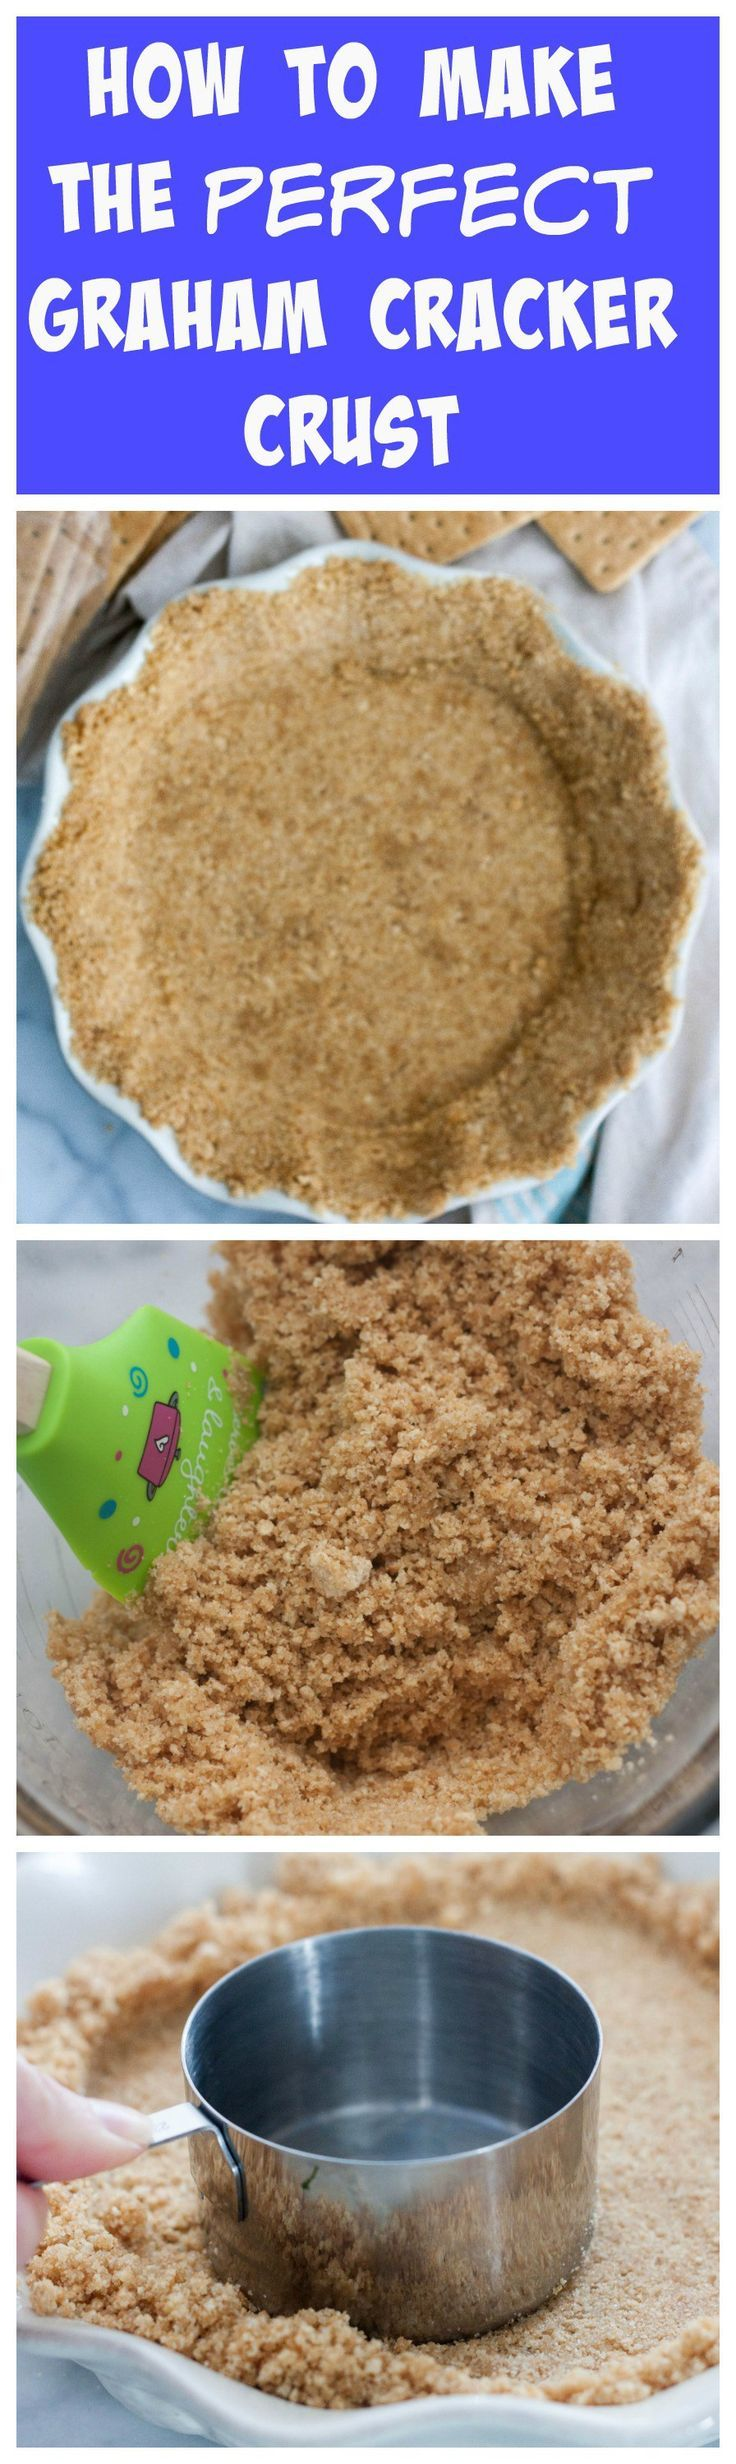 How To Make A Perfect Graham Cracker Crust - only 3 ingredients is needed to make one at home! It's 1000x times better than storebought! From Boston Girl Bakes